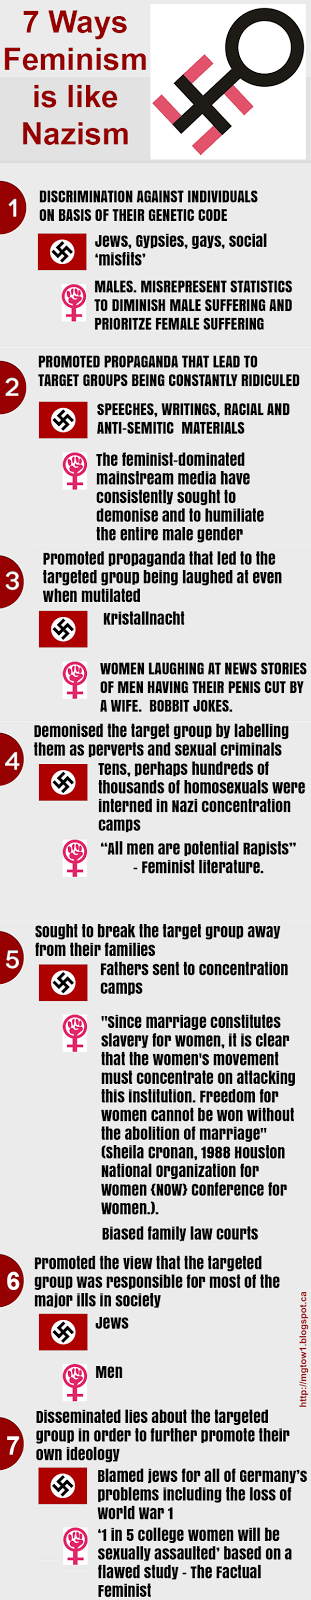 7-ways-feminism-is-like-nazism-01.png